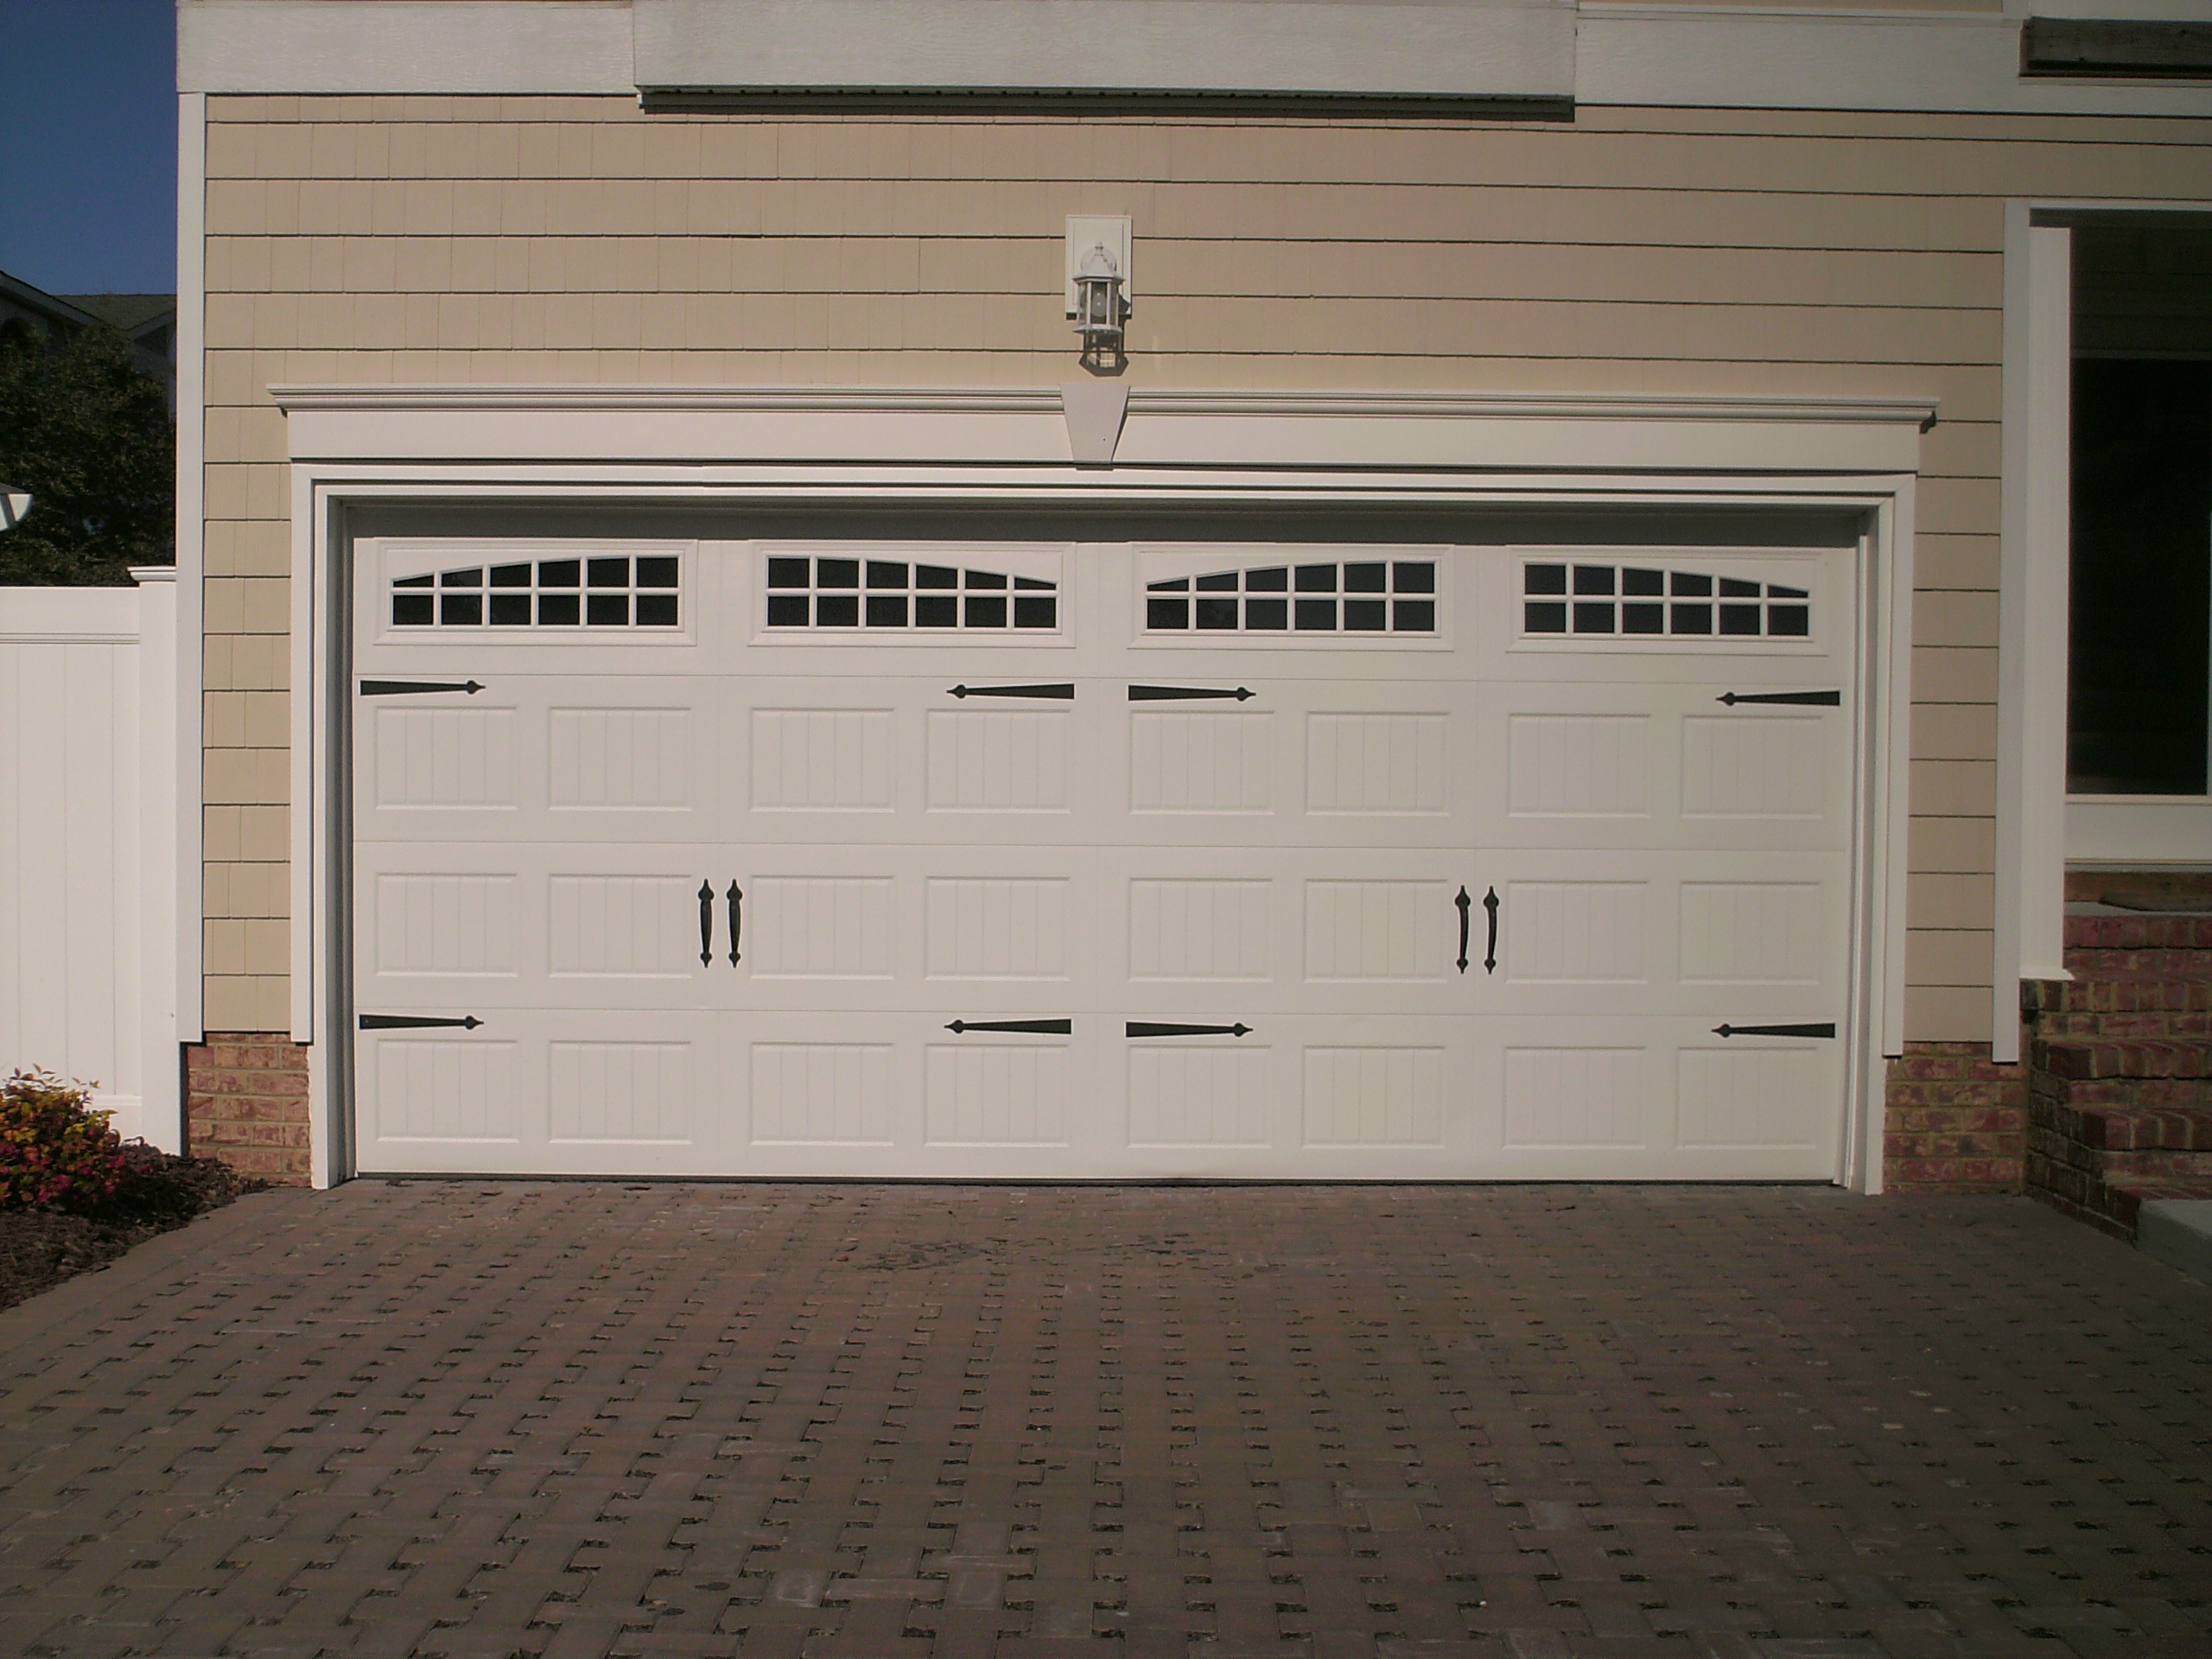 1920 #354A67 Awesome Two Car Garage Doors That Will Inspire You HomesFeed wallpaper Two Car Garage Doors 37652560